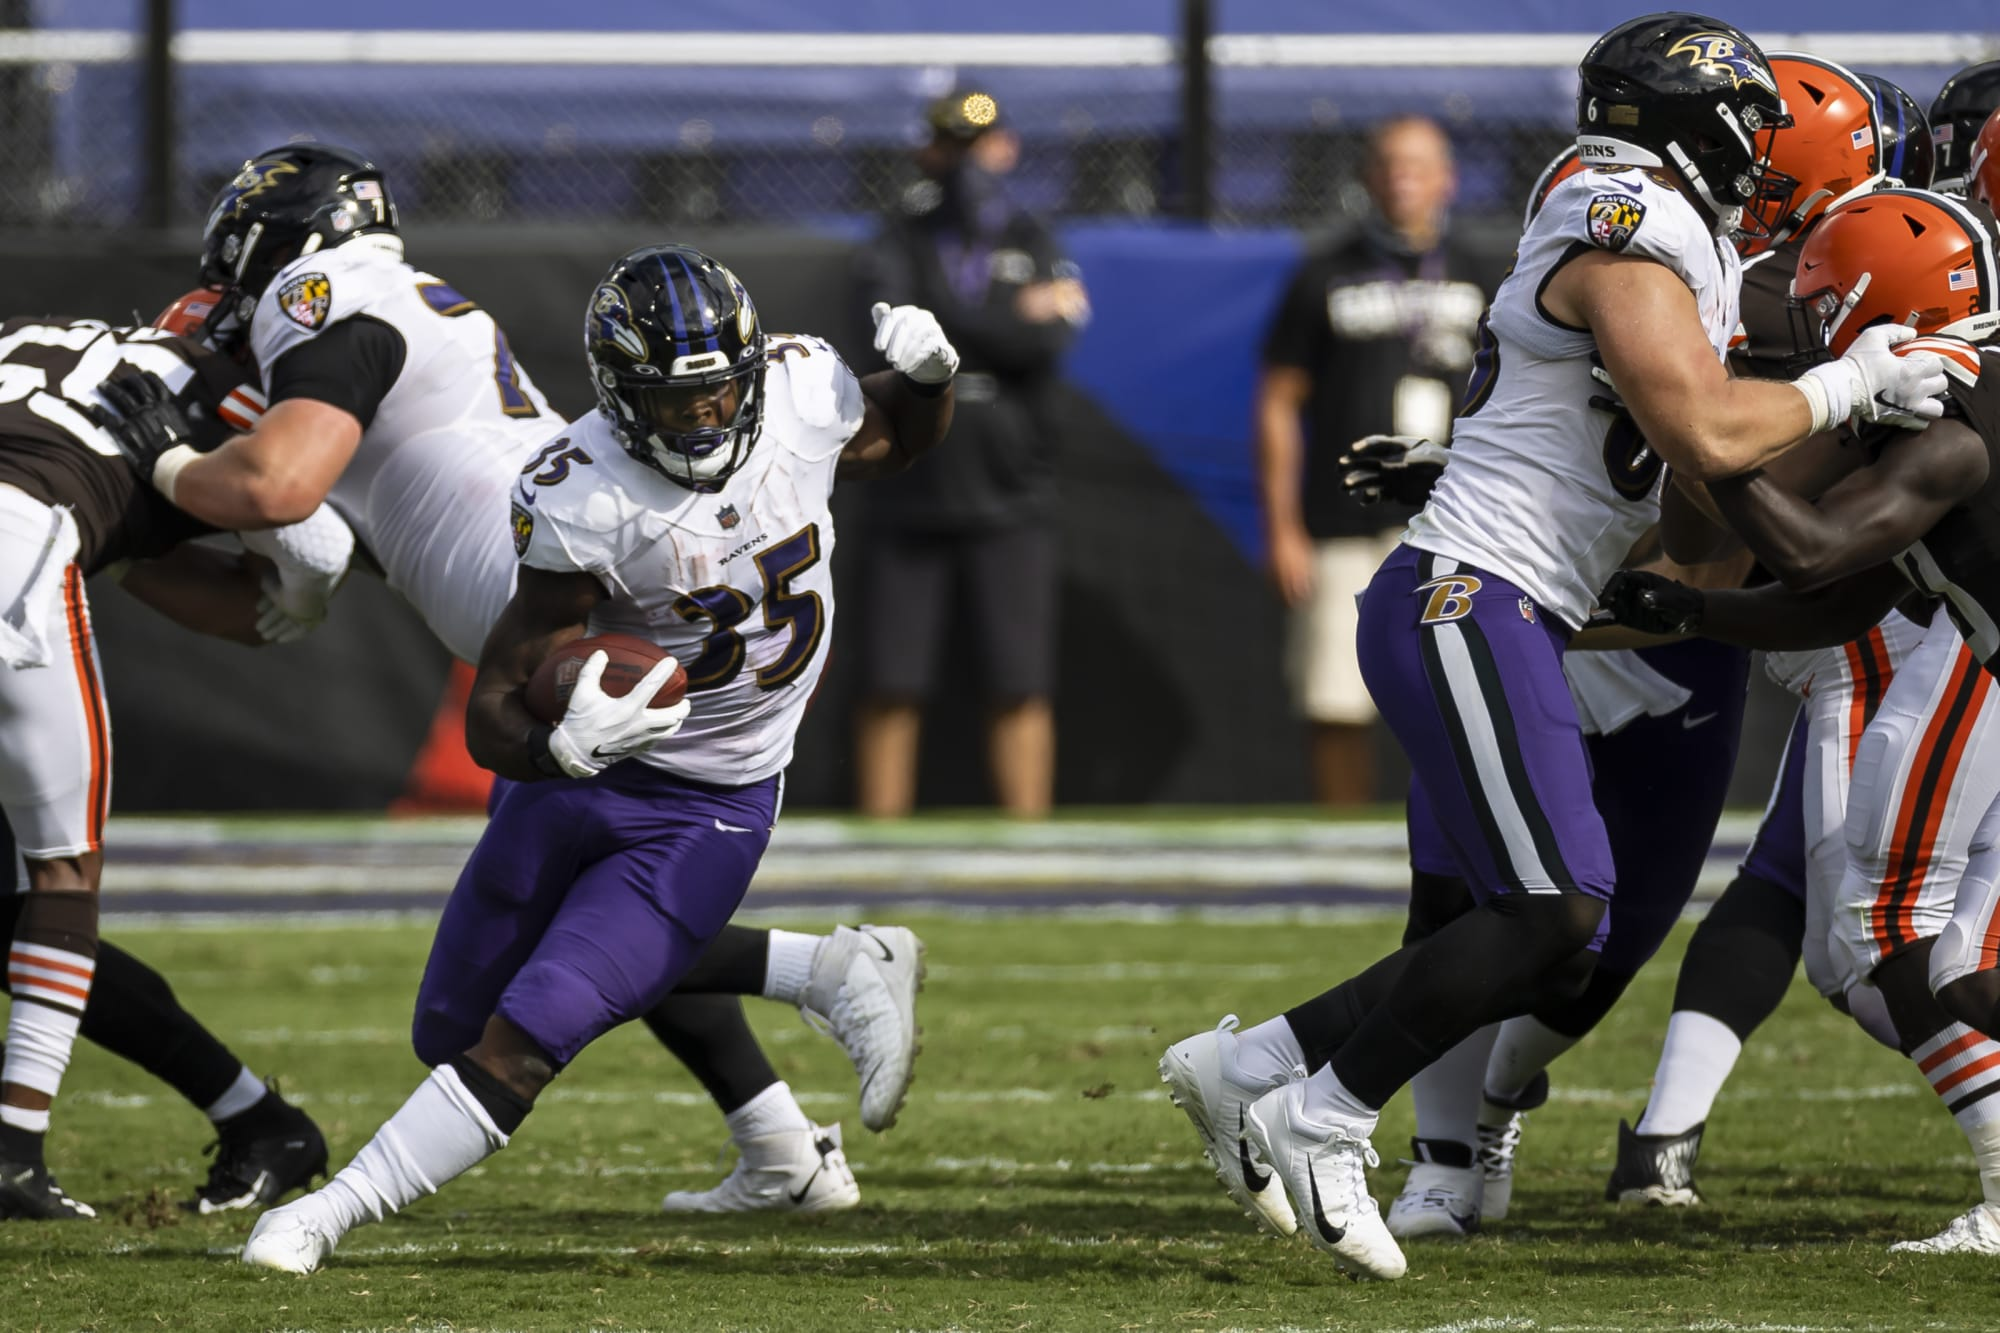 #LetGusCook: Baltimore Ravens need to give Gus Edwards more carries - The Ebony Bird